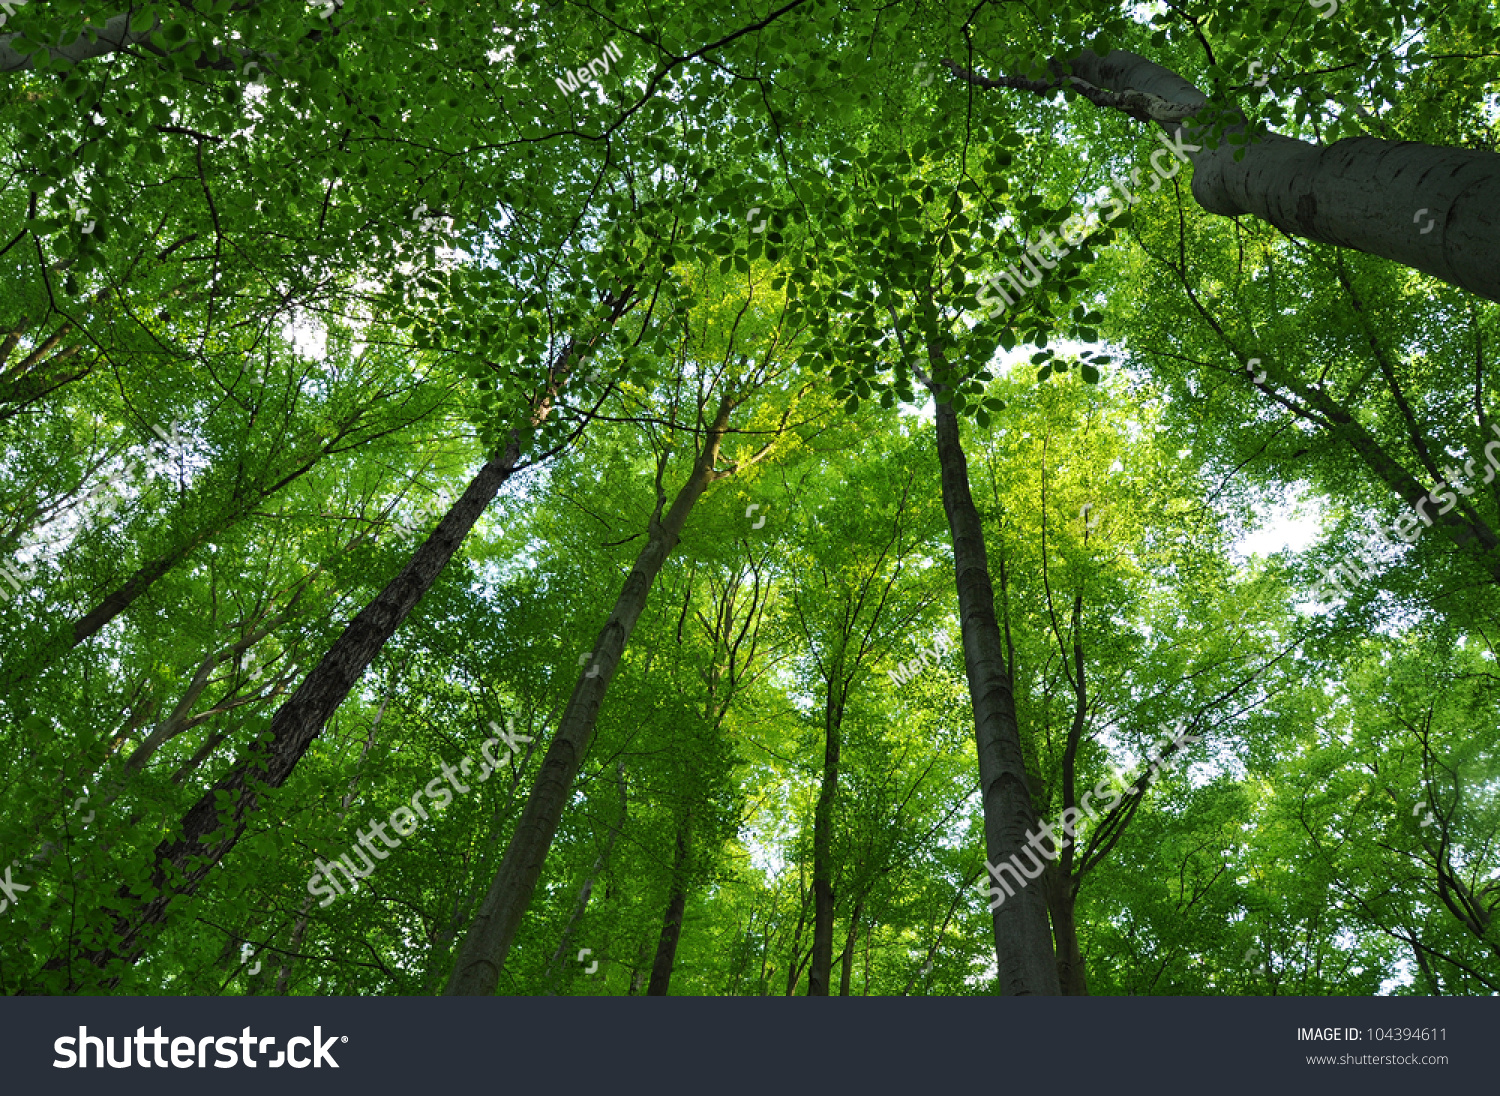 green tree forest - photo #49